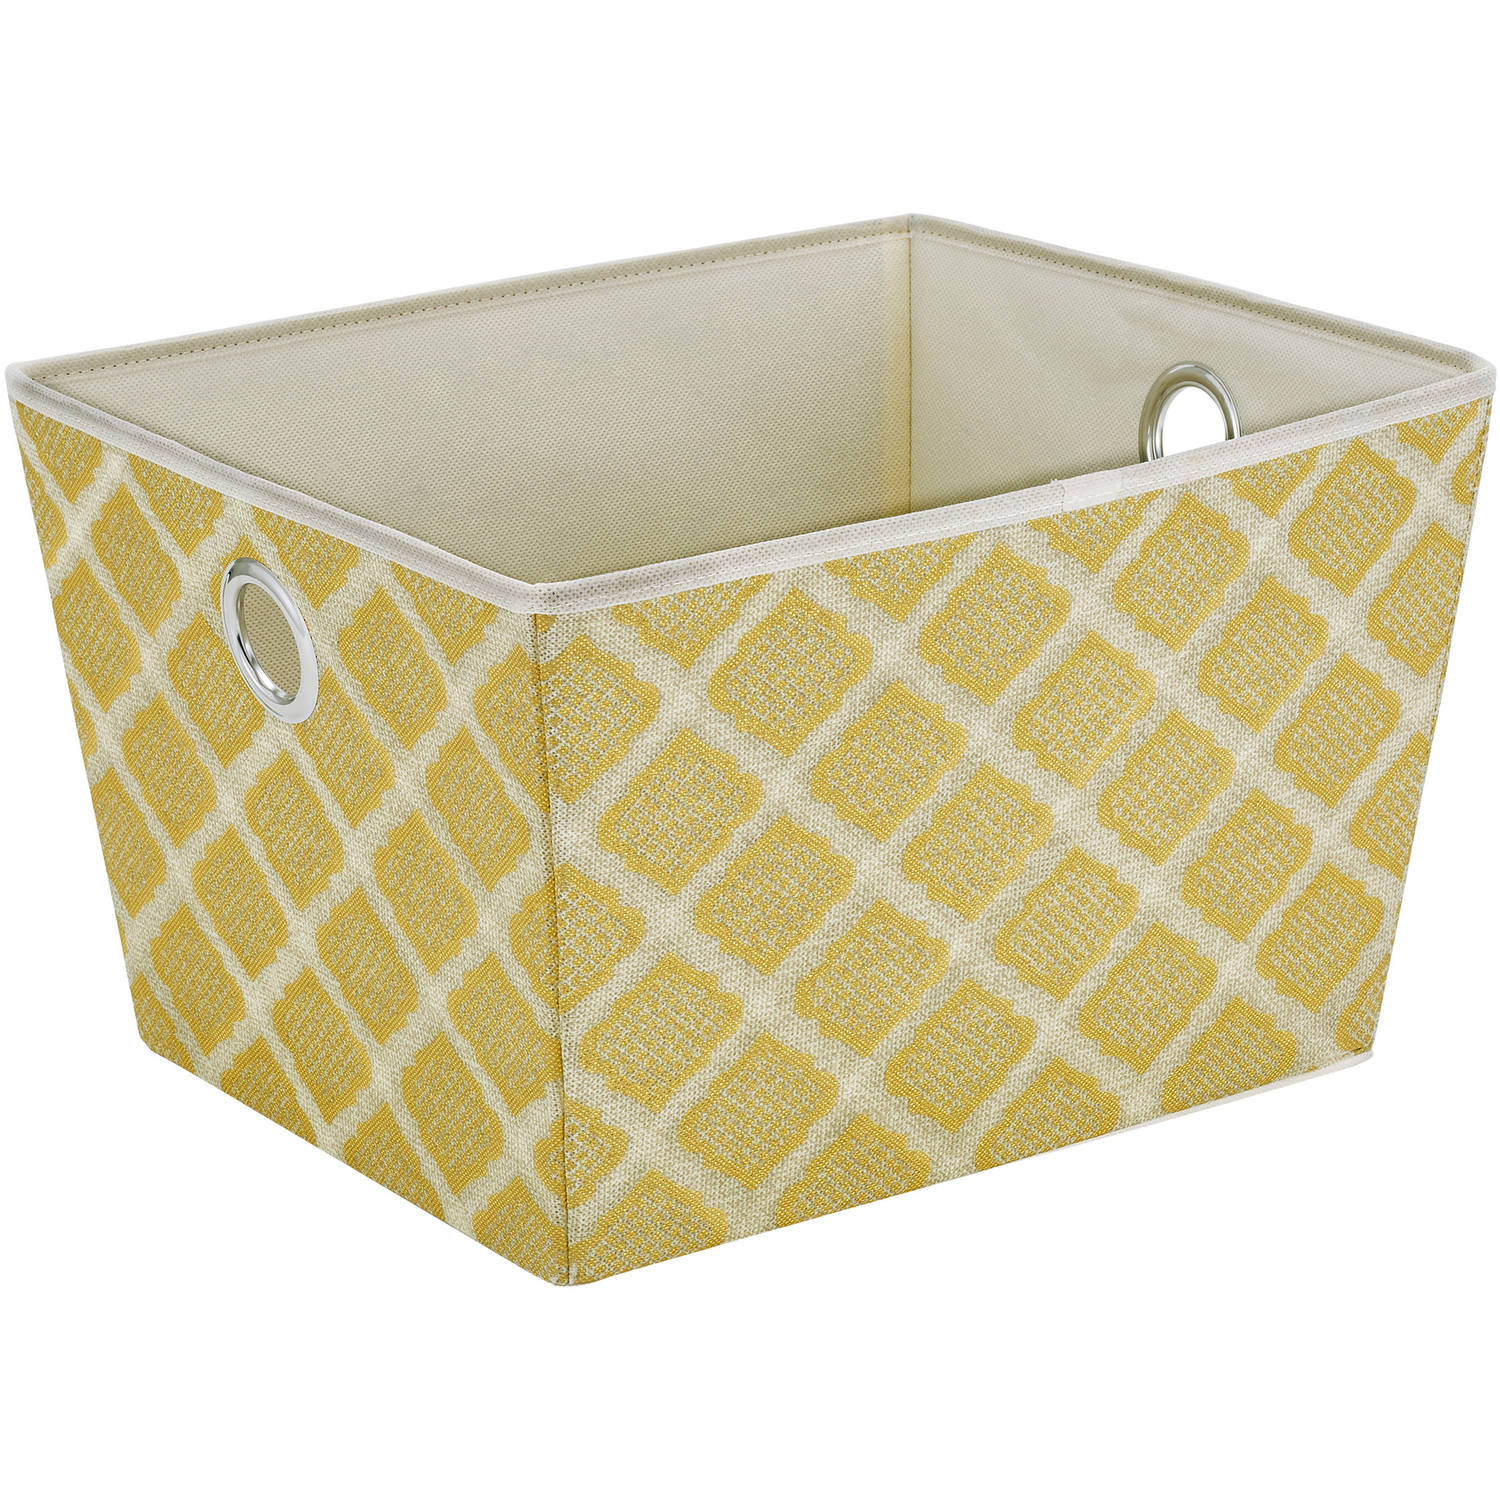 HouseCandie ClosetCandie Large Grommet Storage Bin, Jasmine Gold